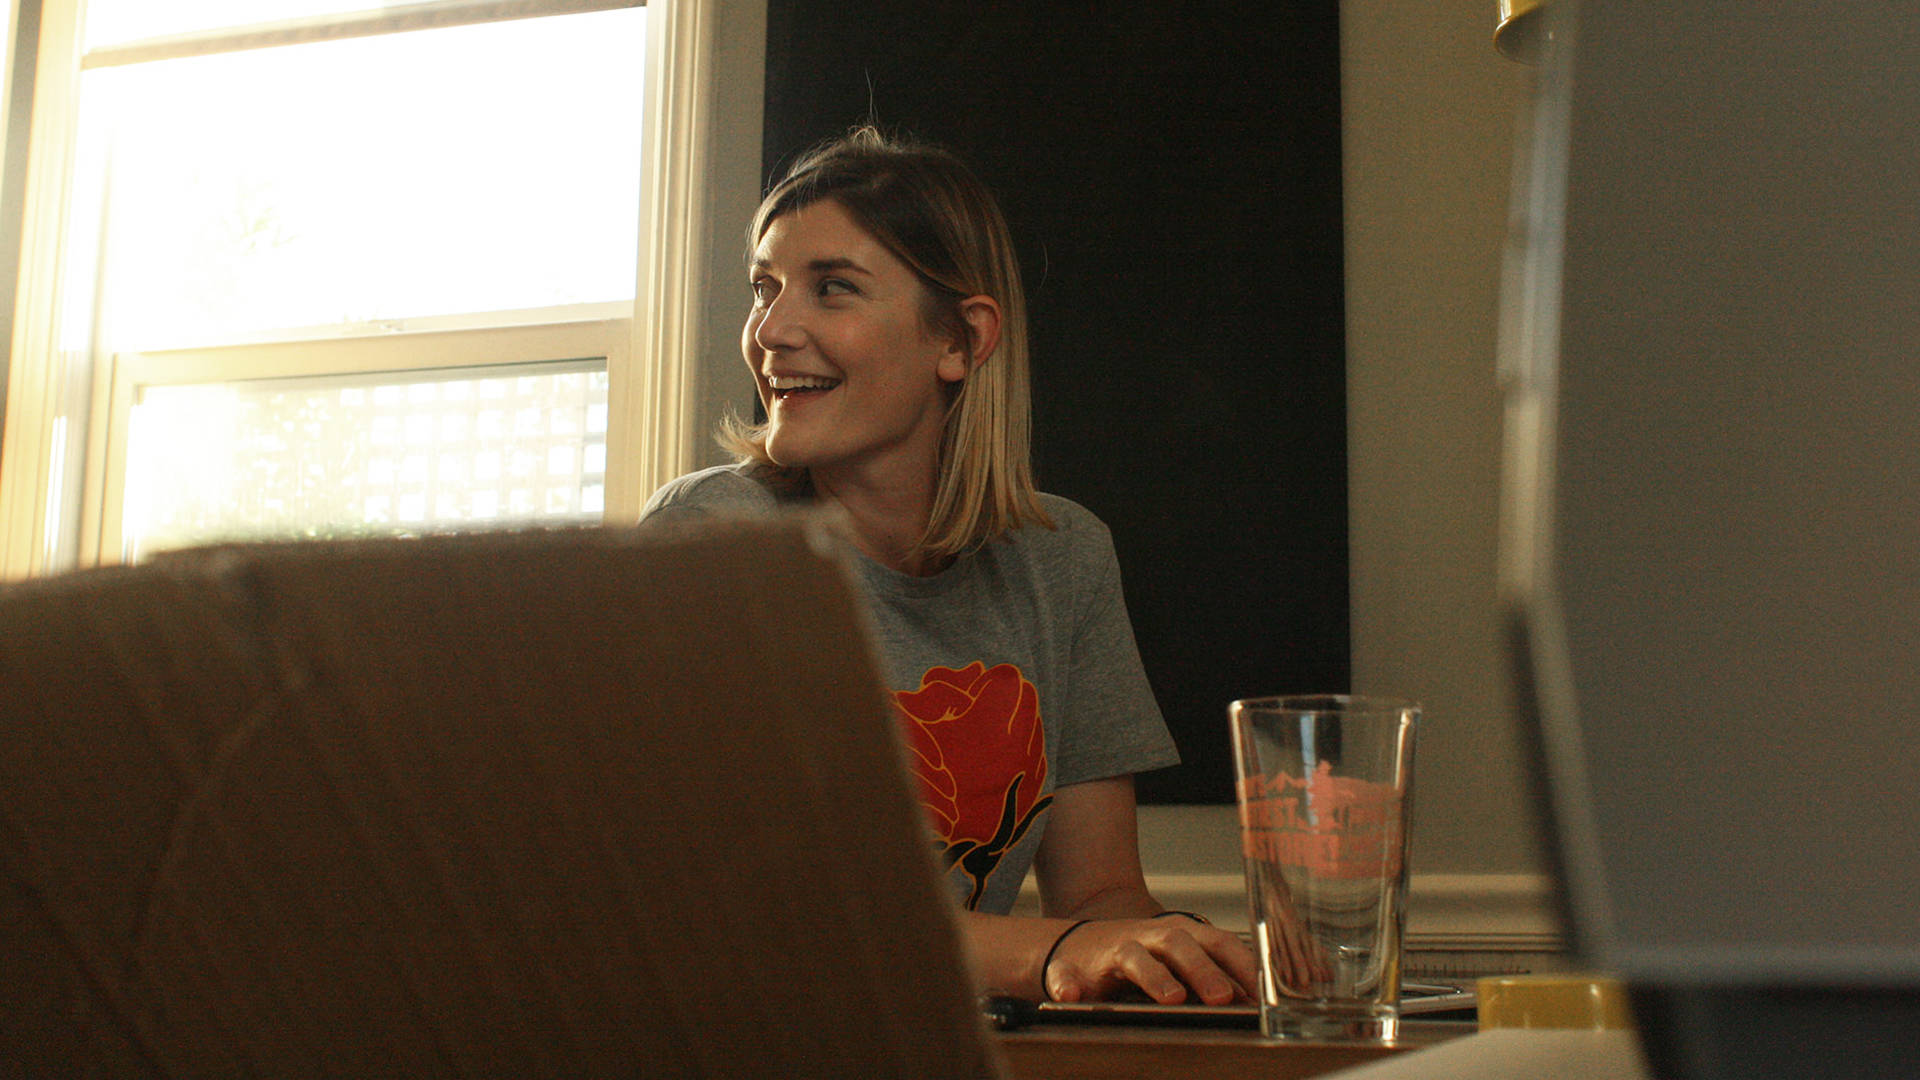 Illustrator Mikayla Butchart wearing one of her 'Rose-ilience' t-shirts in her Santa Rosa home studio. Gabe Meline/KQED